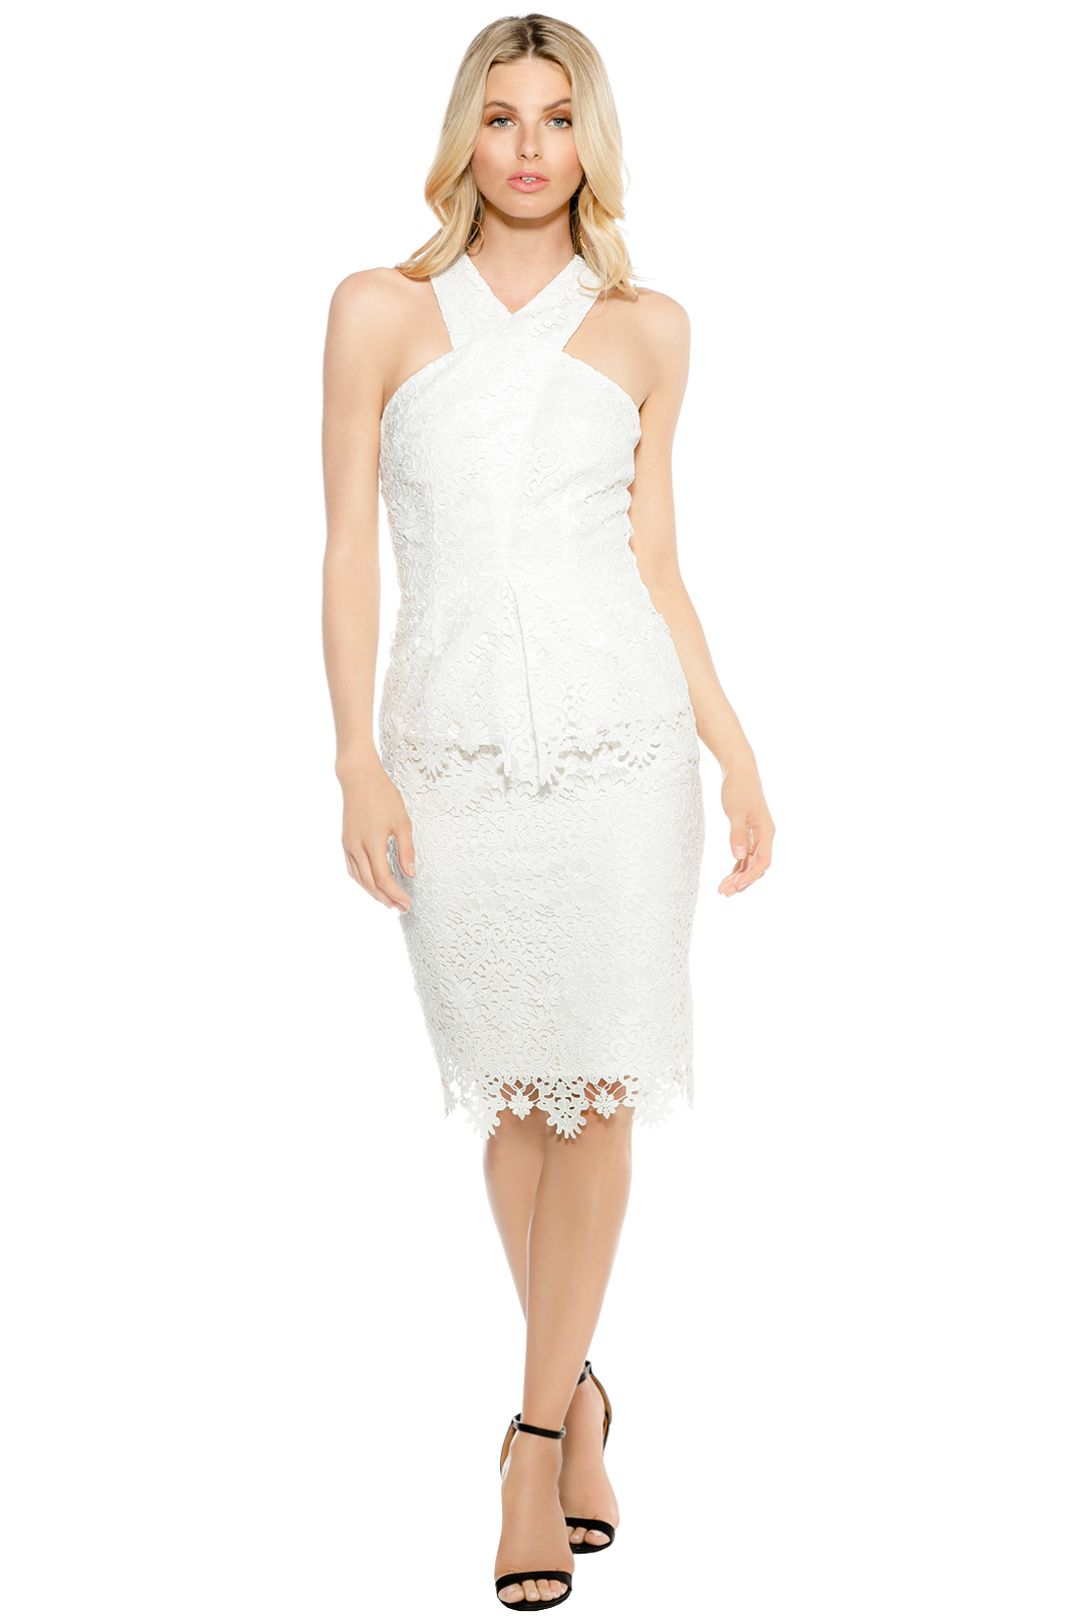 Ministry of Style - Cross Section Fitted Midi Dress - Ivory - Front